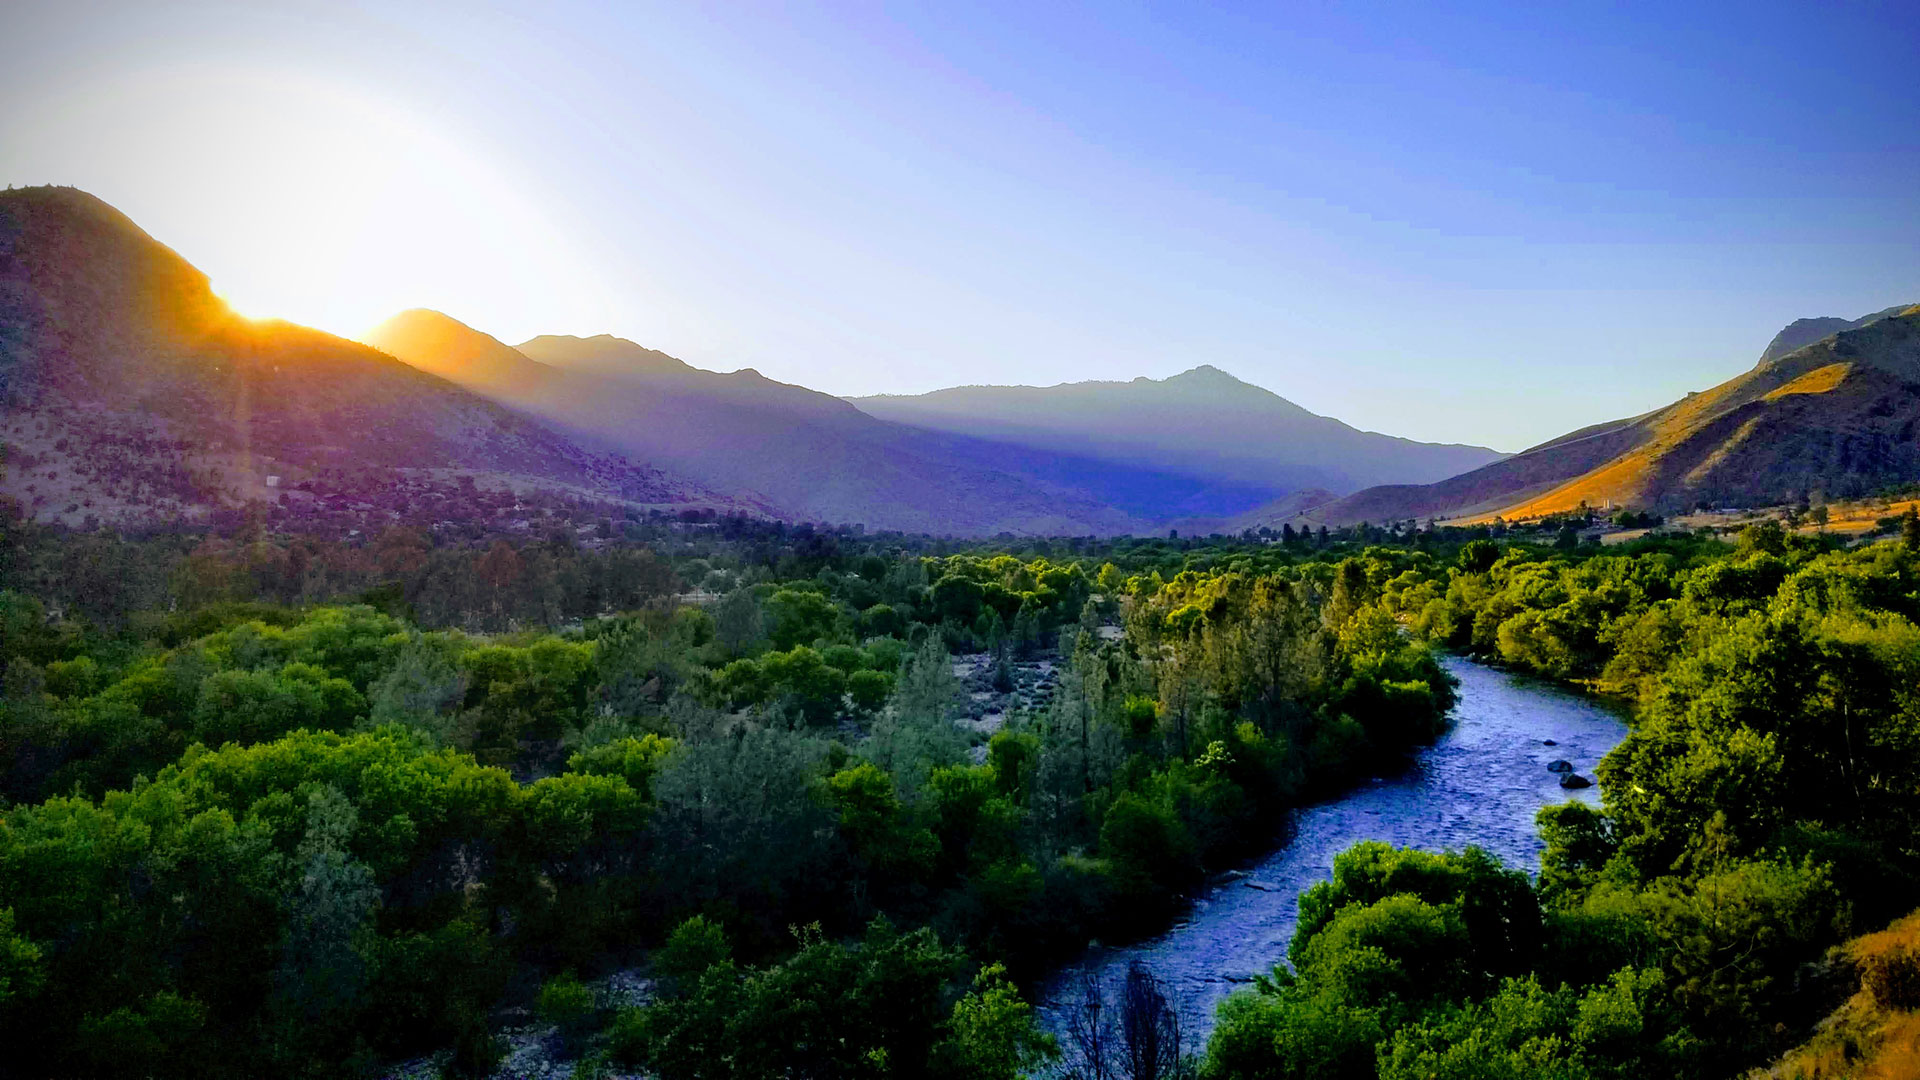 kernville-kern-river-sunset-1920x1080-60qty-20180524_191107-EFFECTS